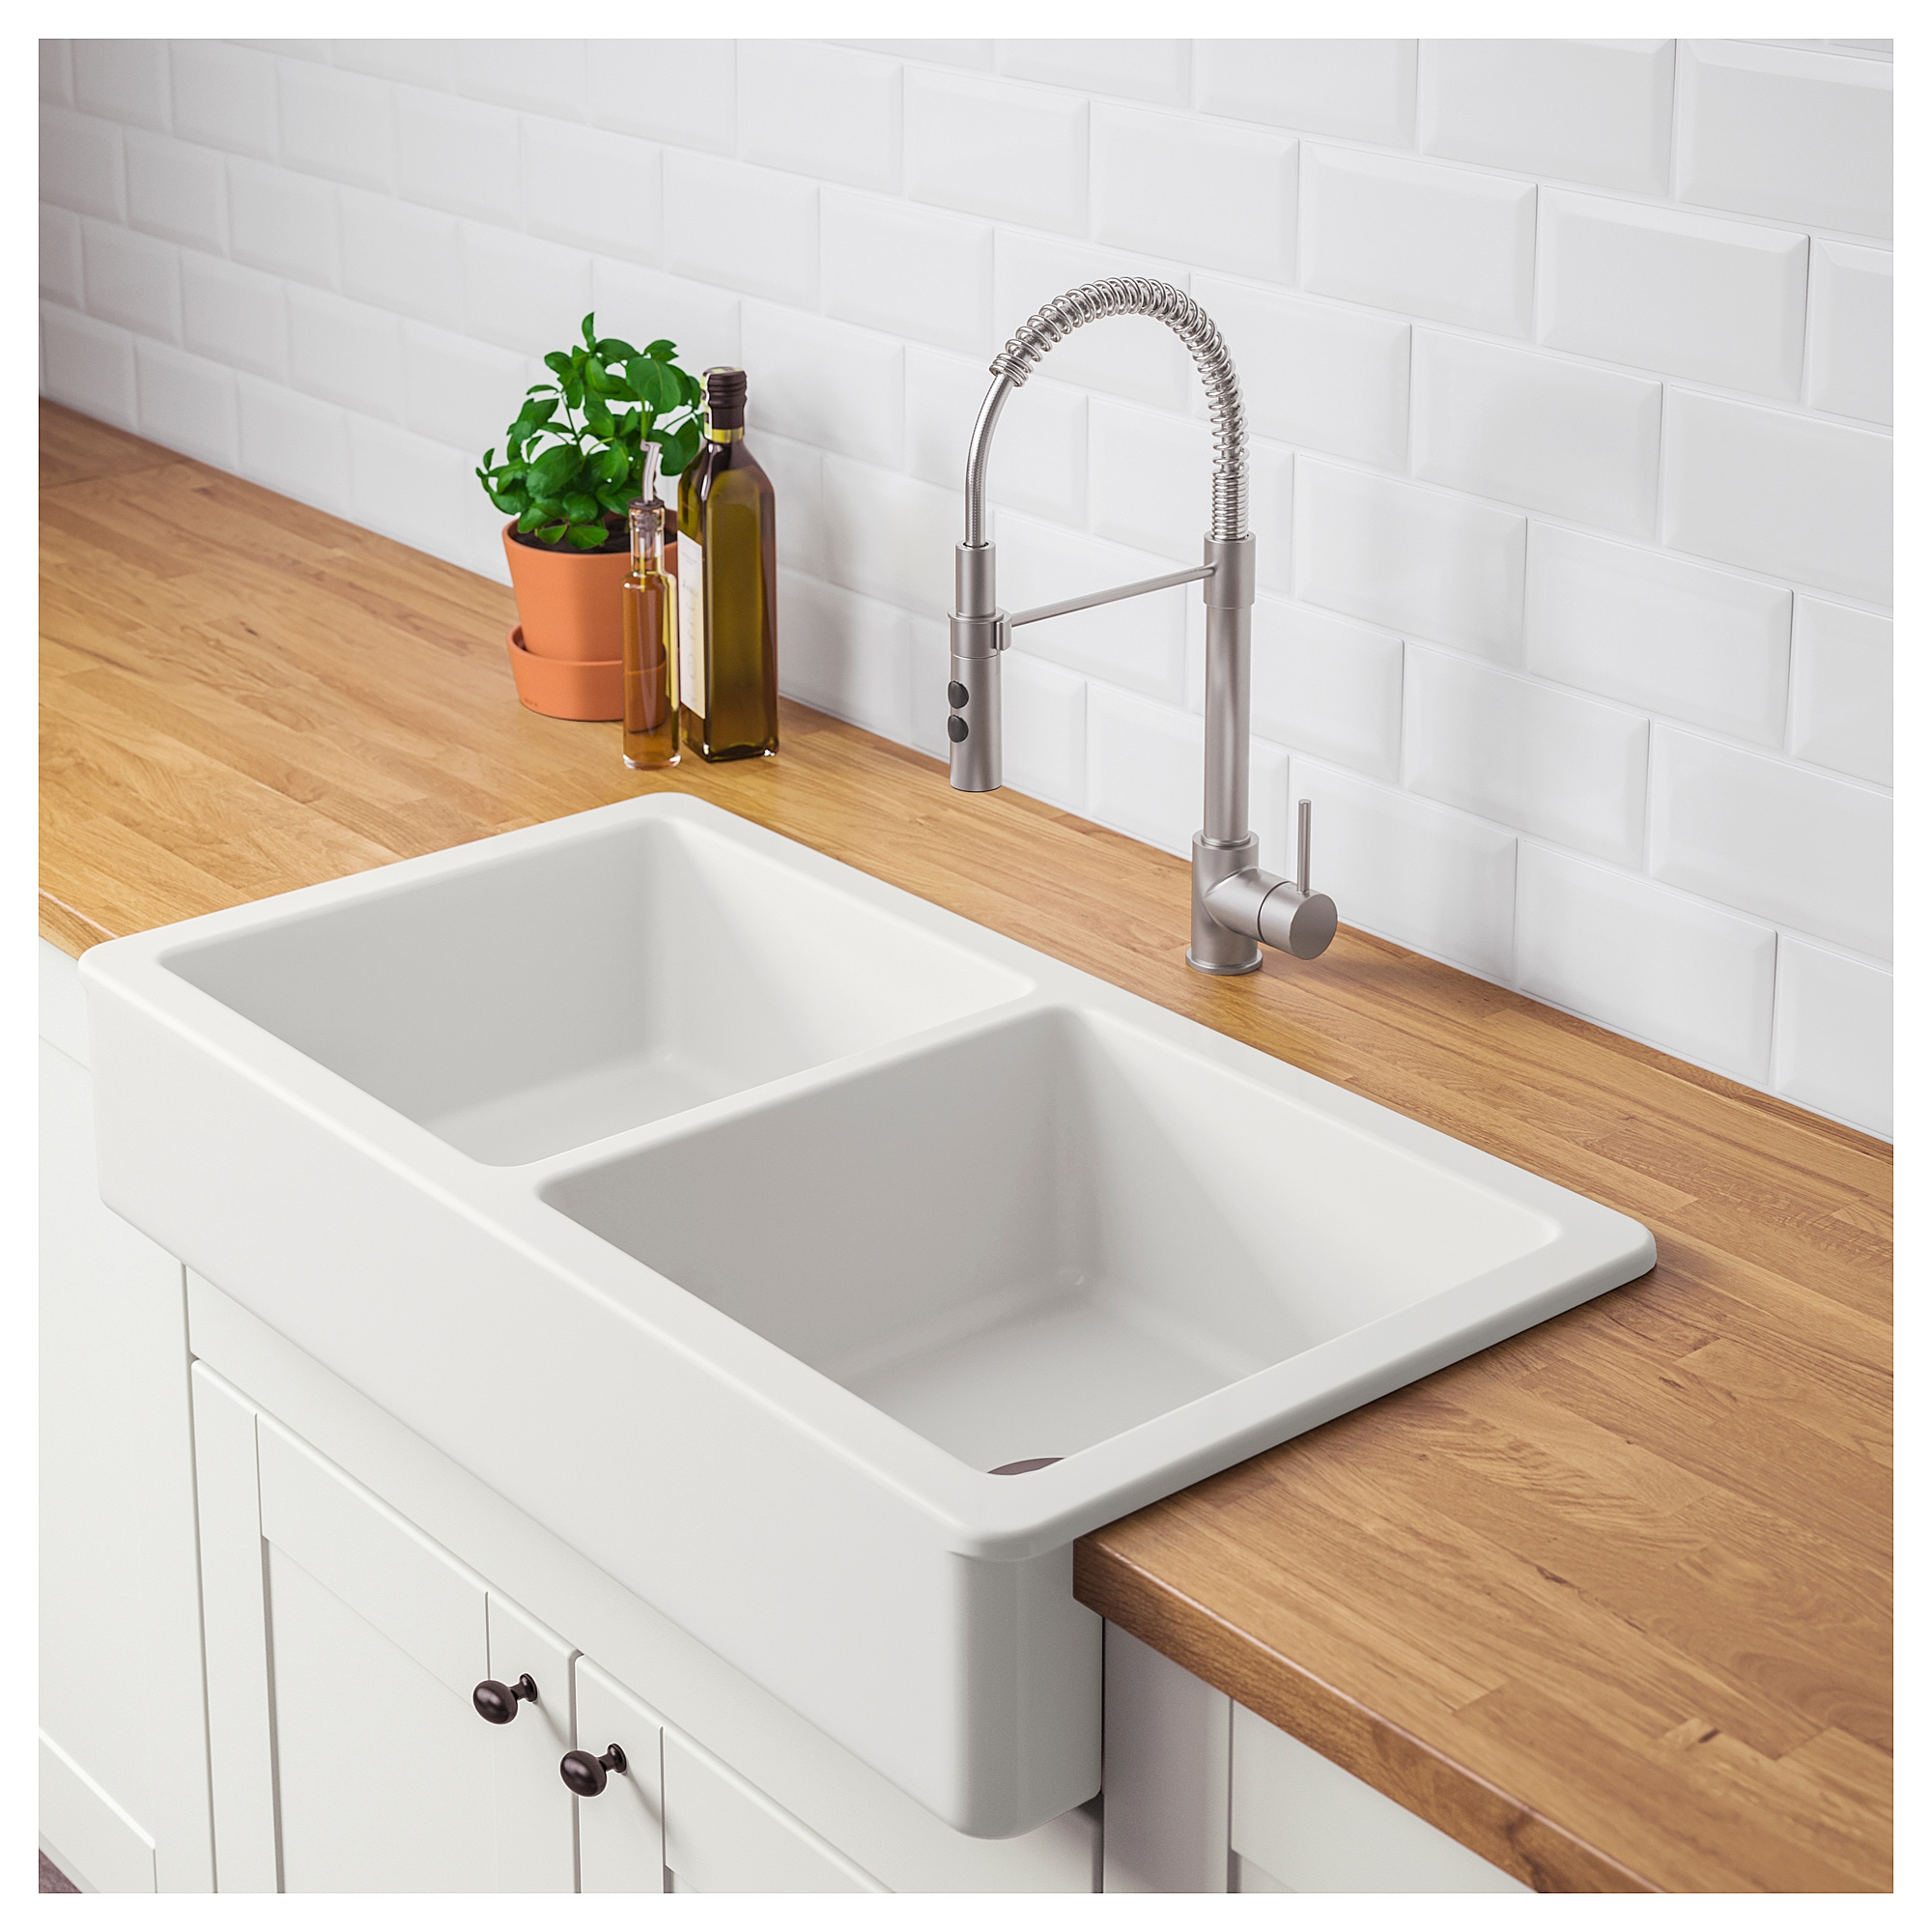 Apron front double bowl sink HAVSEN white